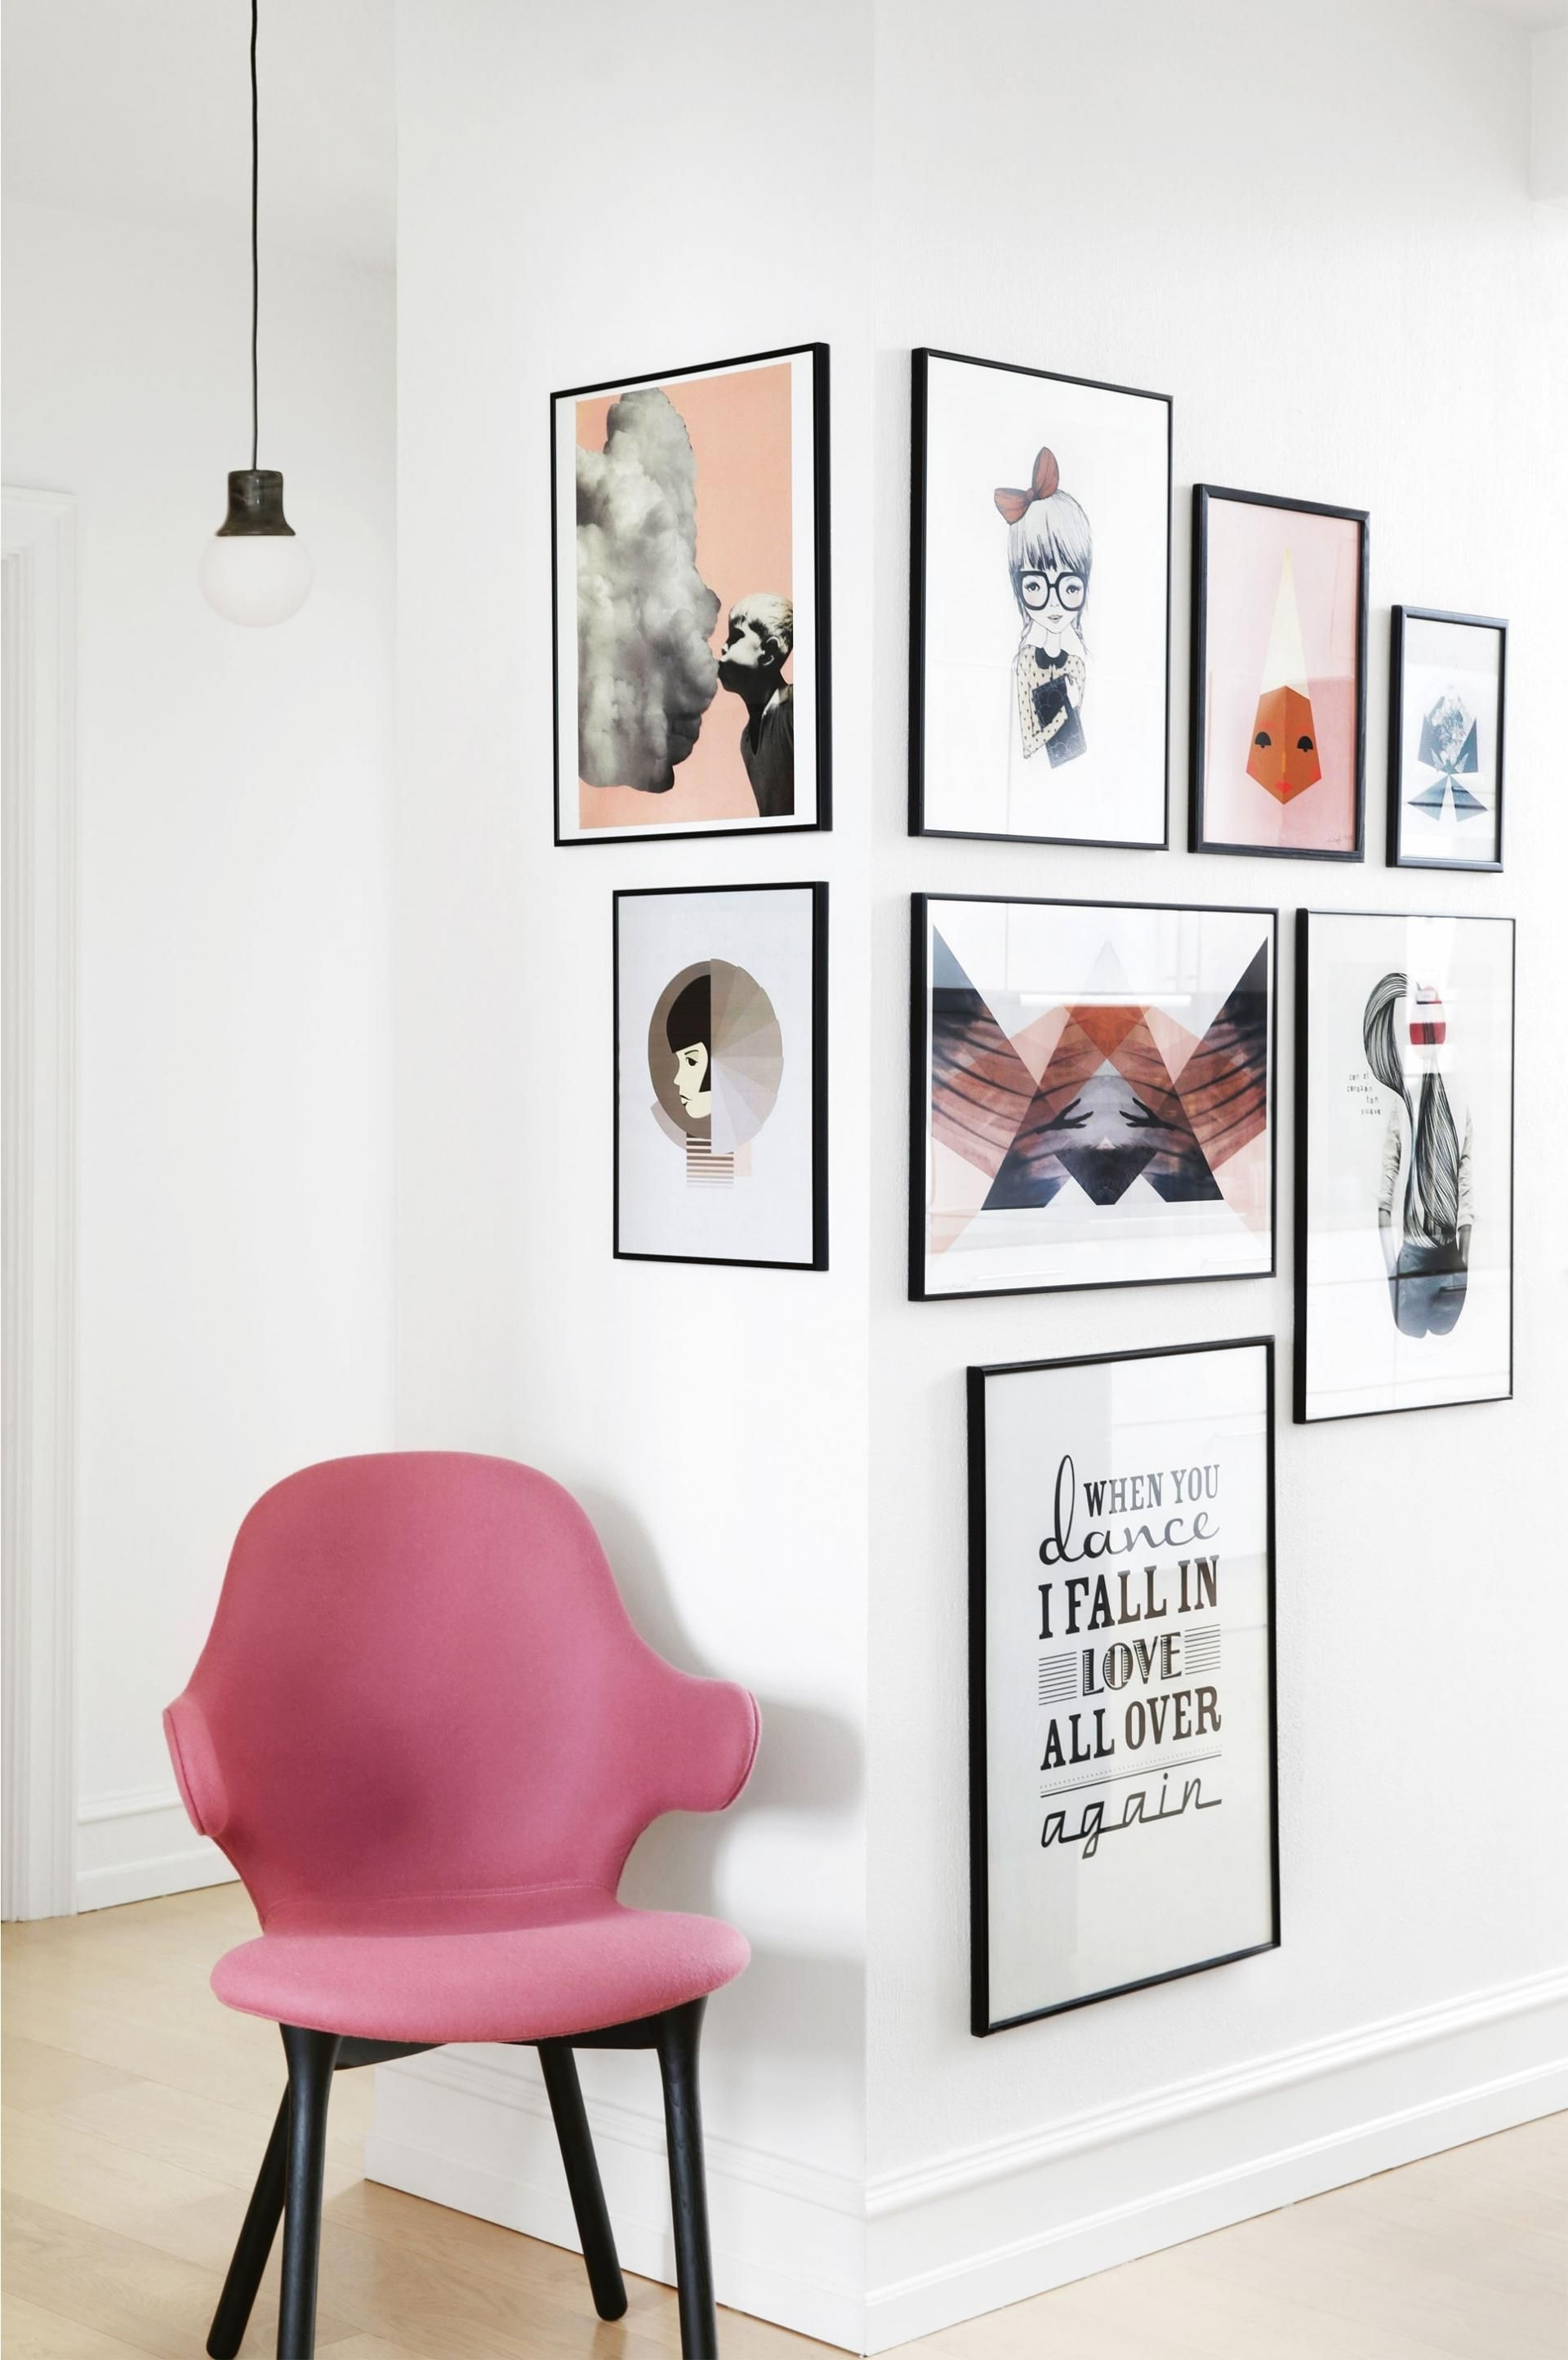 17 Unique Wall Art Display Ideas That Aren't Another Gallery Wall Throughout Latest Corner Wall Art (View 14 of 20)